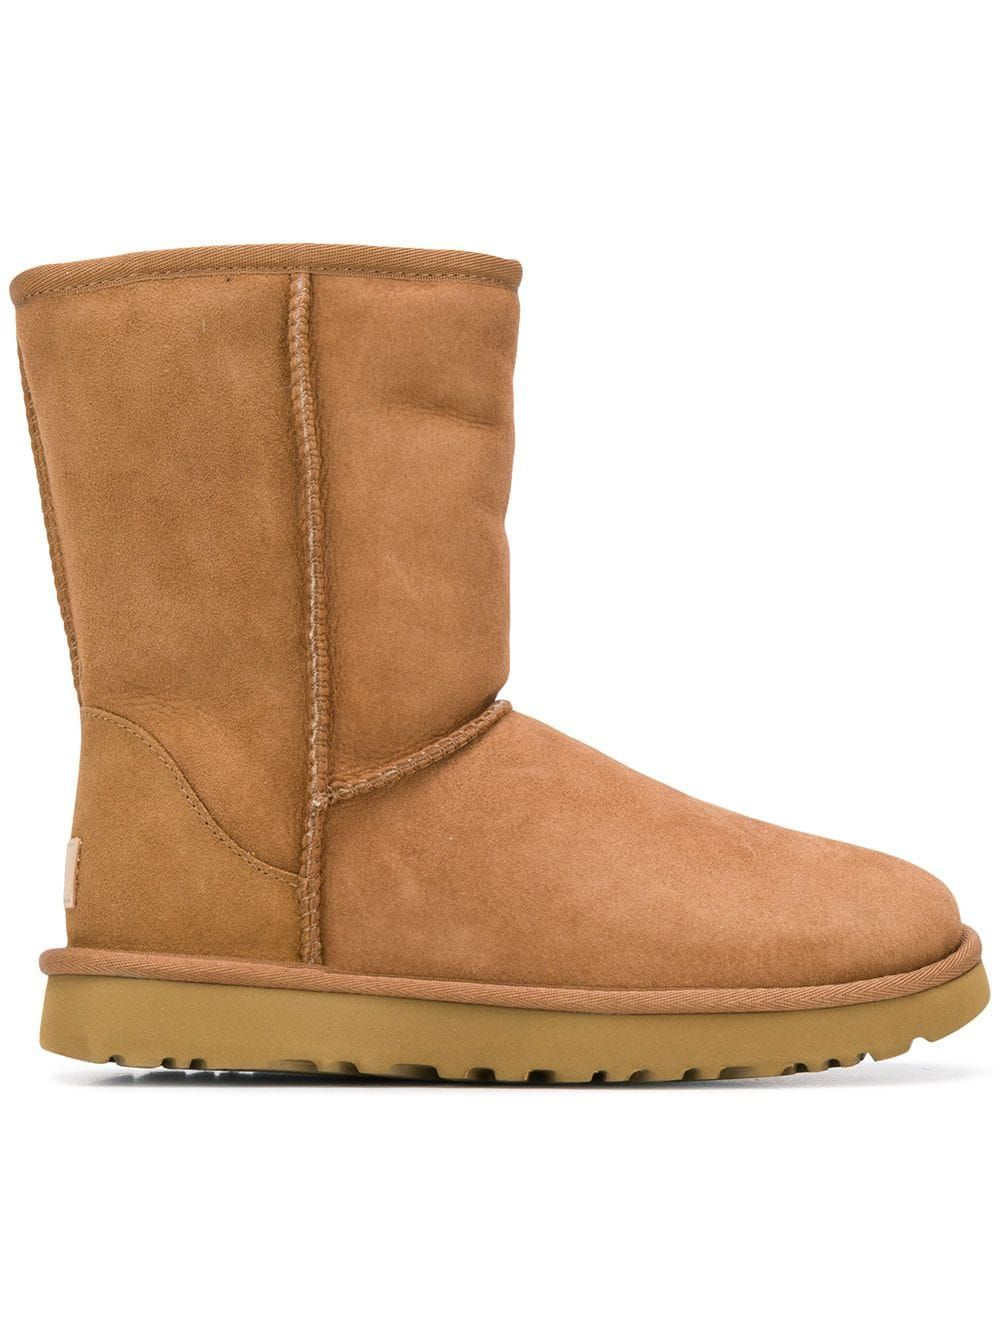 UGG Sale: How To Get 30% Off UGG Boots Now